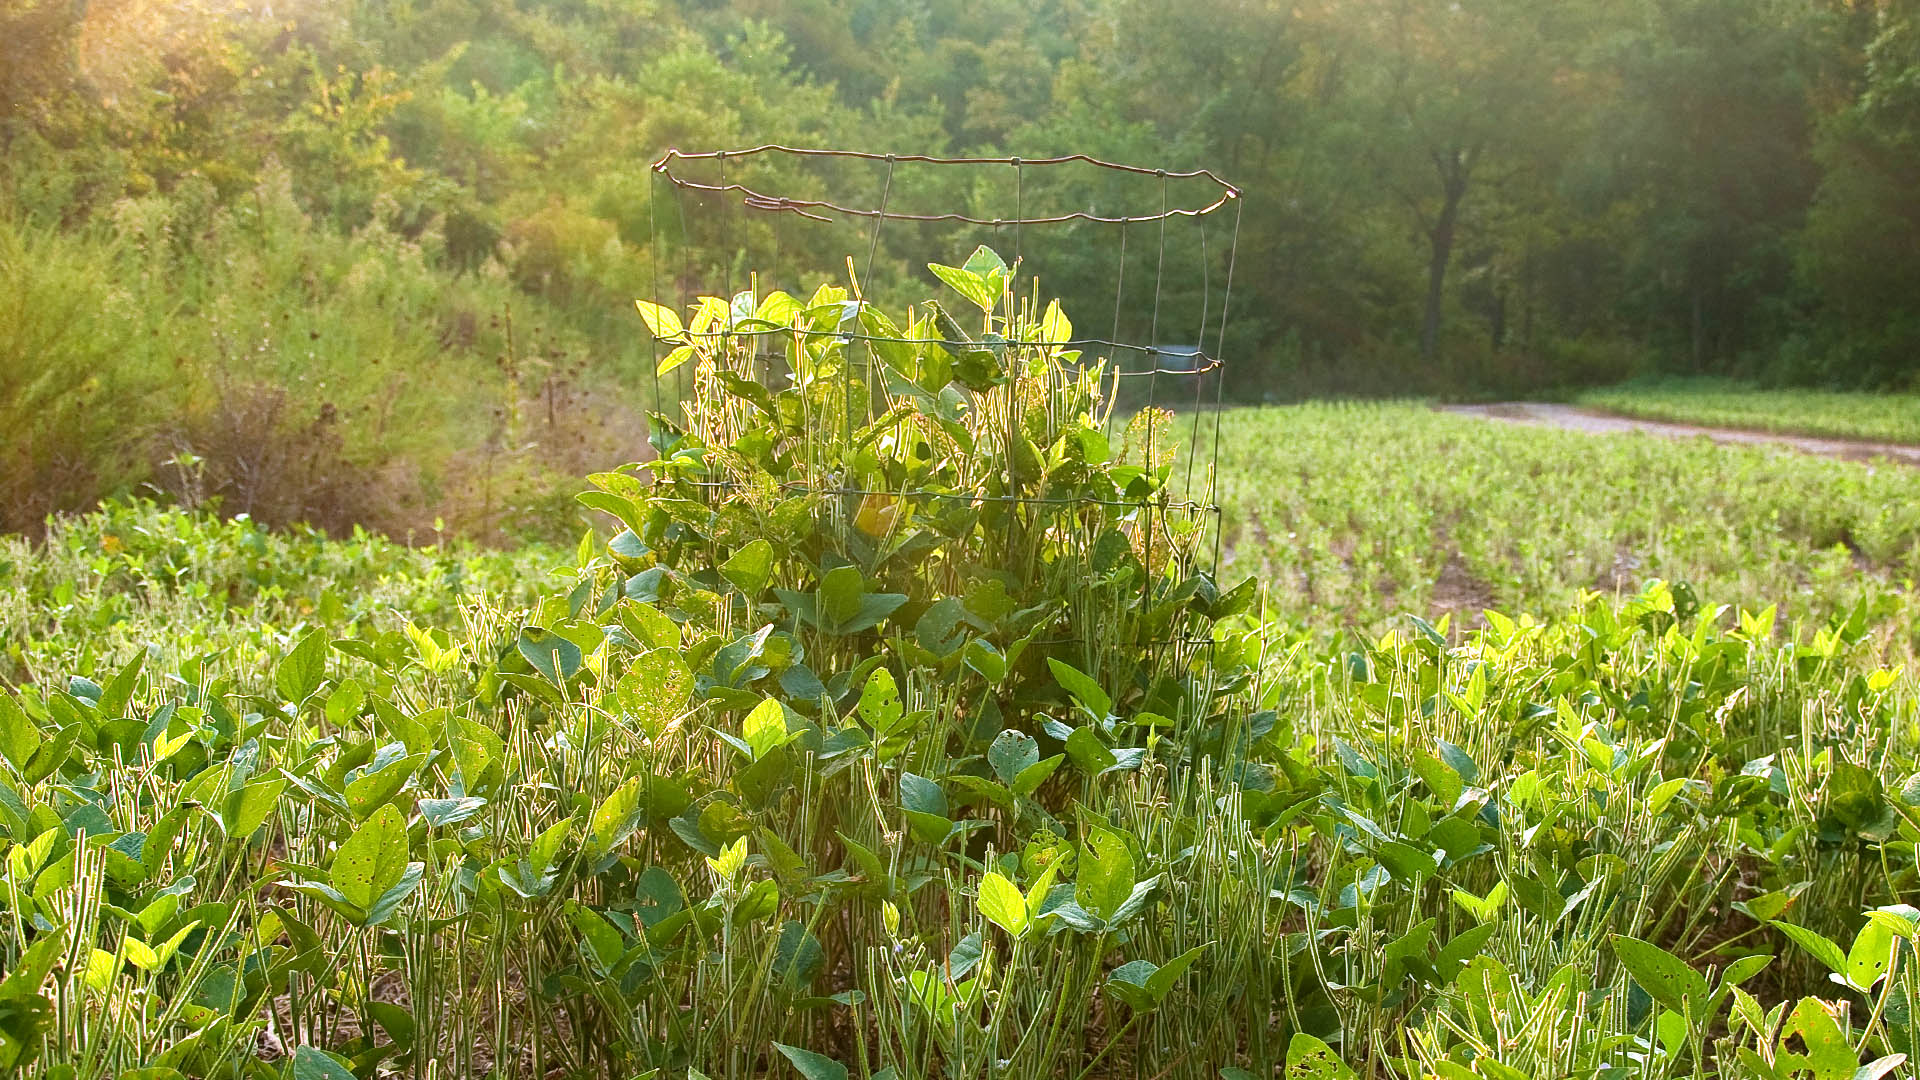 utilization cage shows deer browse in soybean field